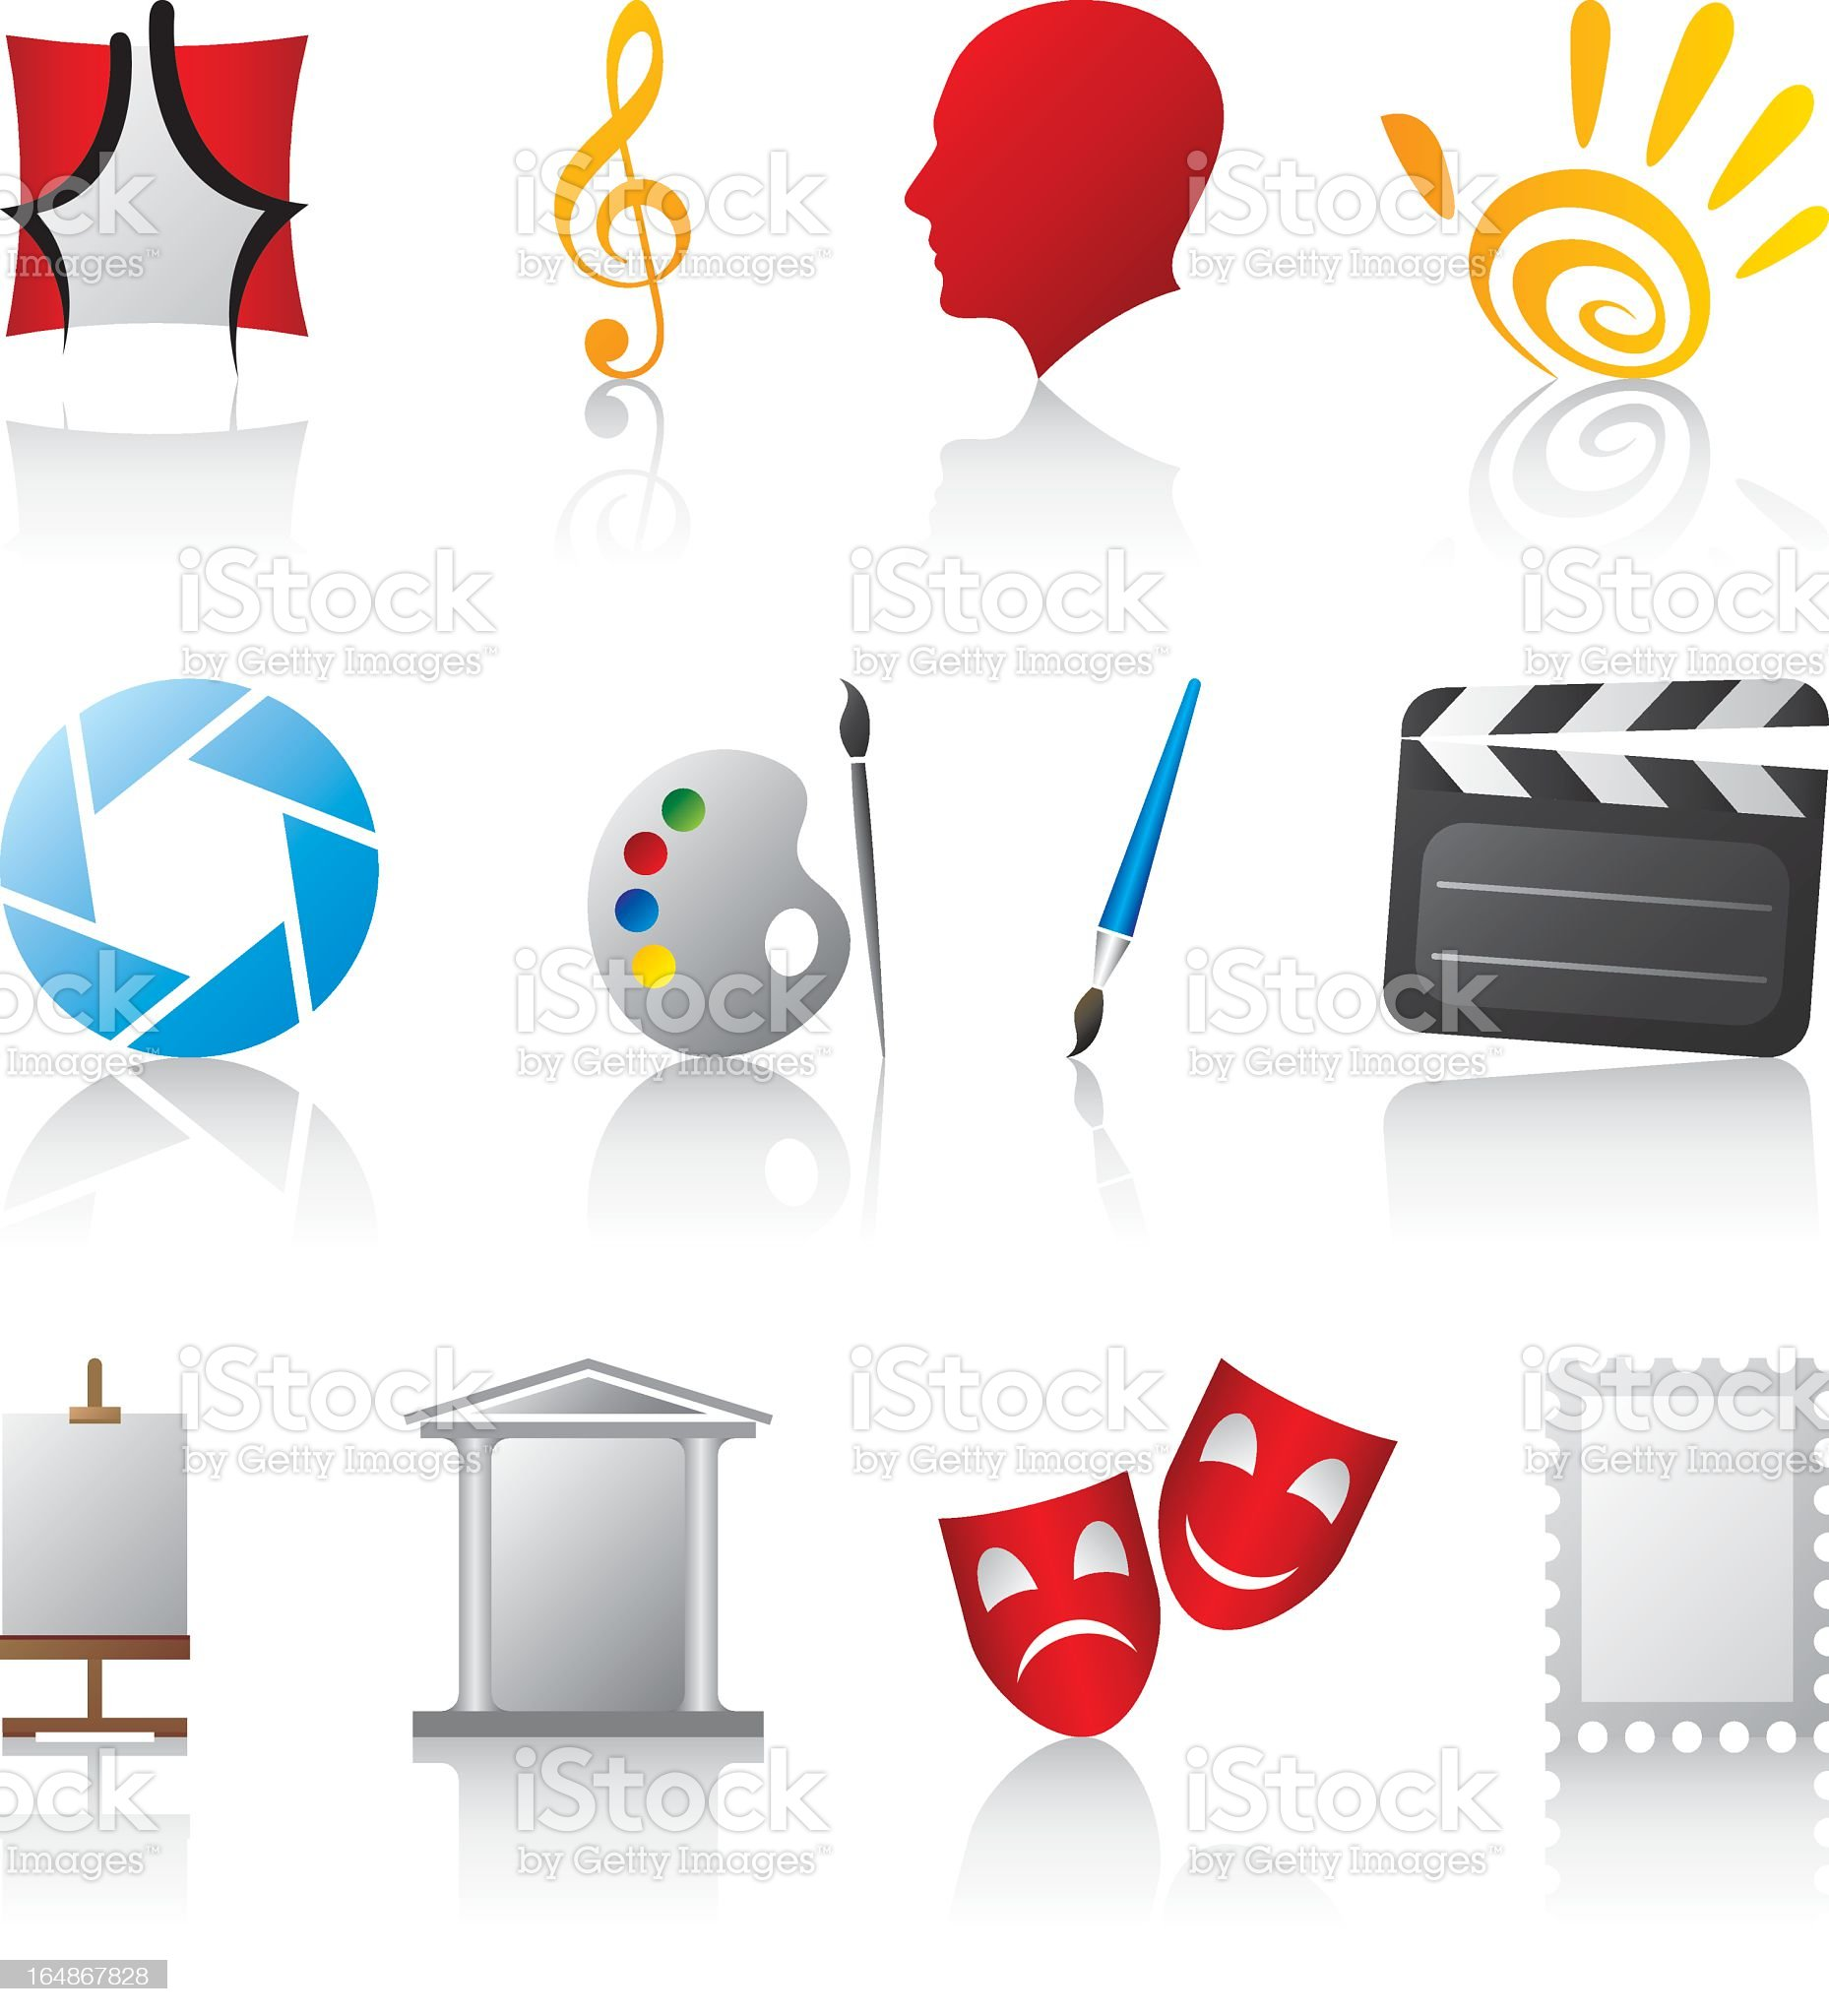 Various art icons on a white background royalty-free stock vector art